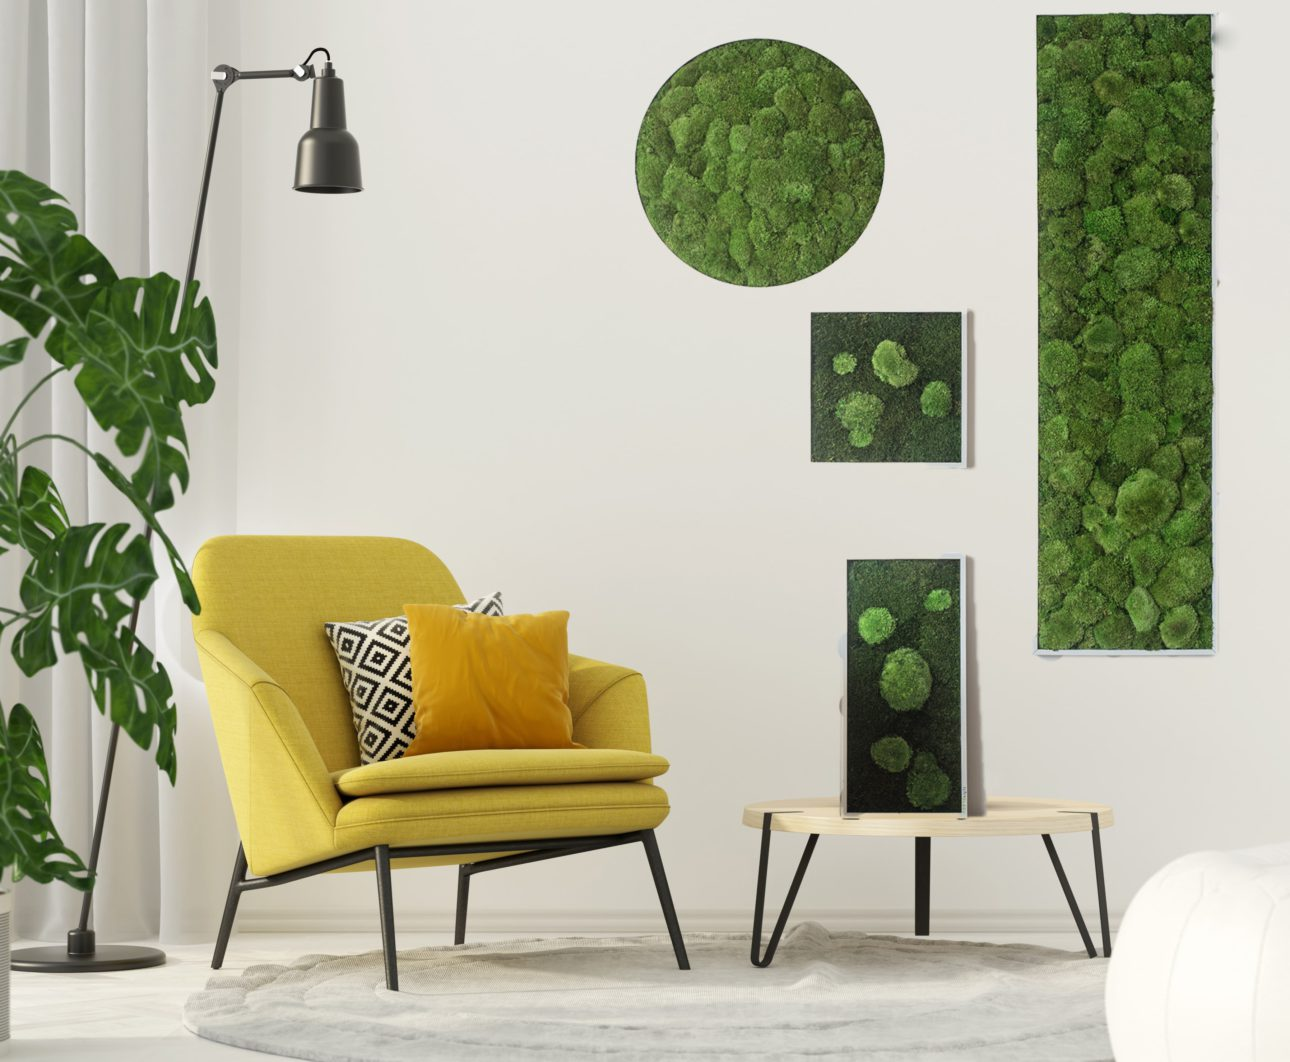 NATURADOR® moss and plant pictures - from real plants